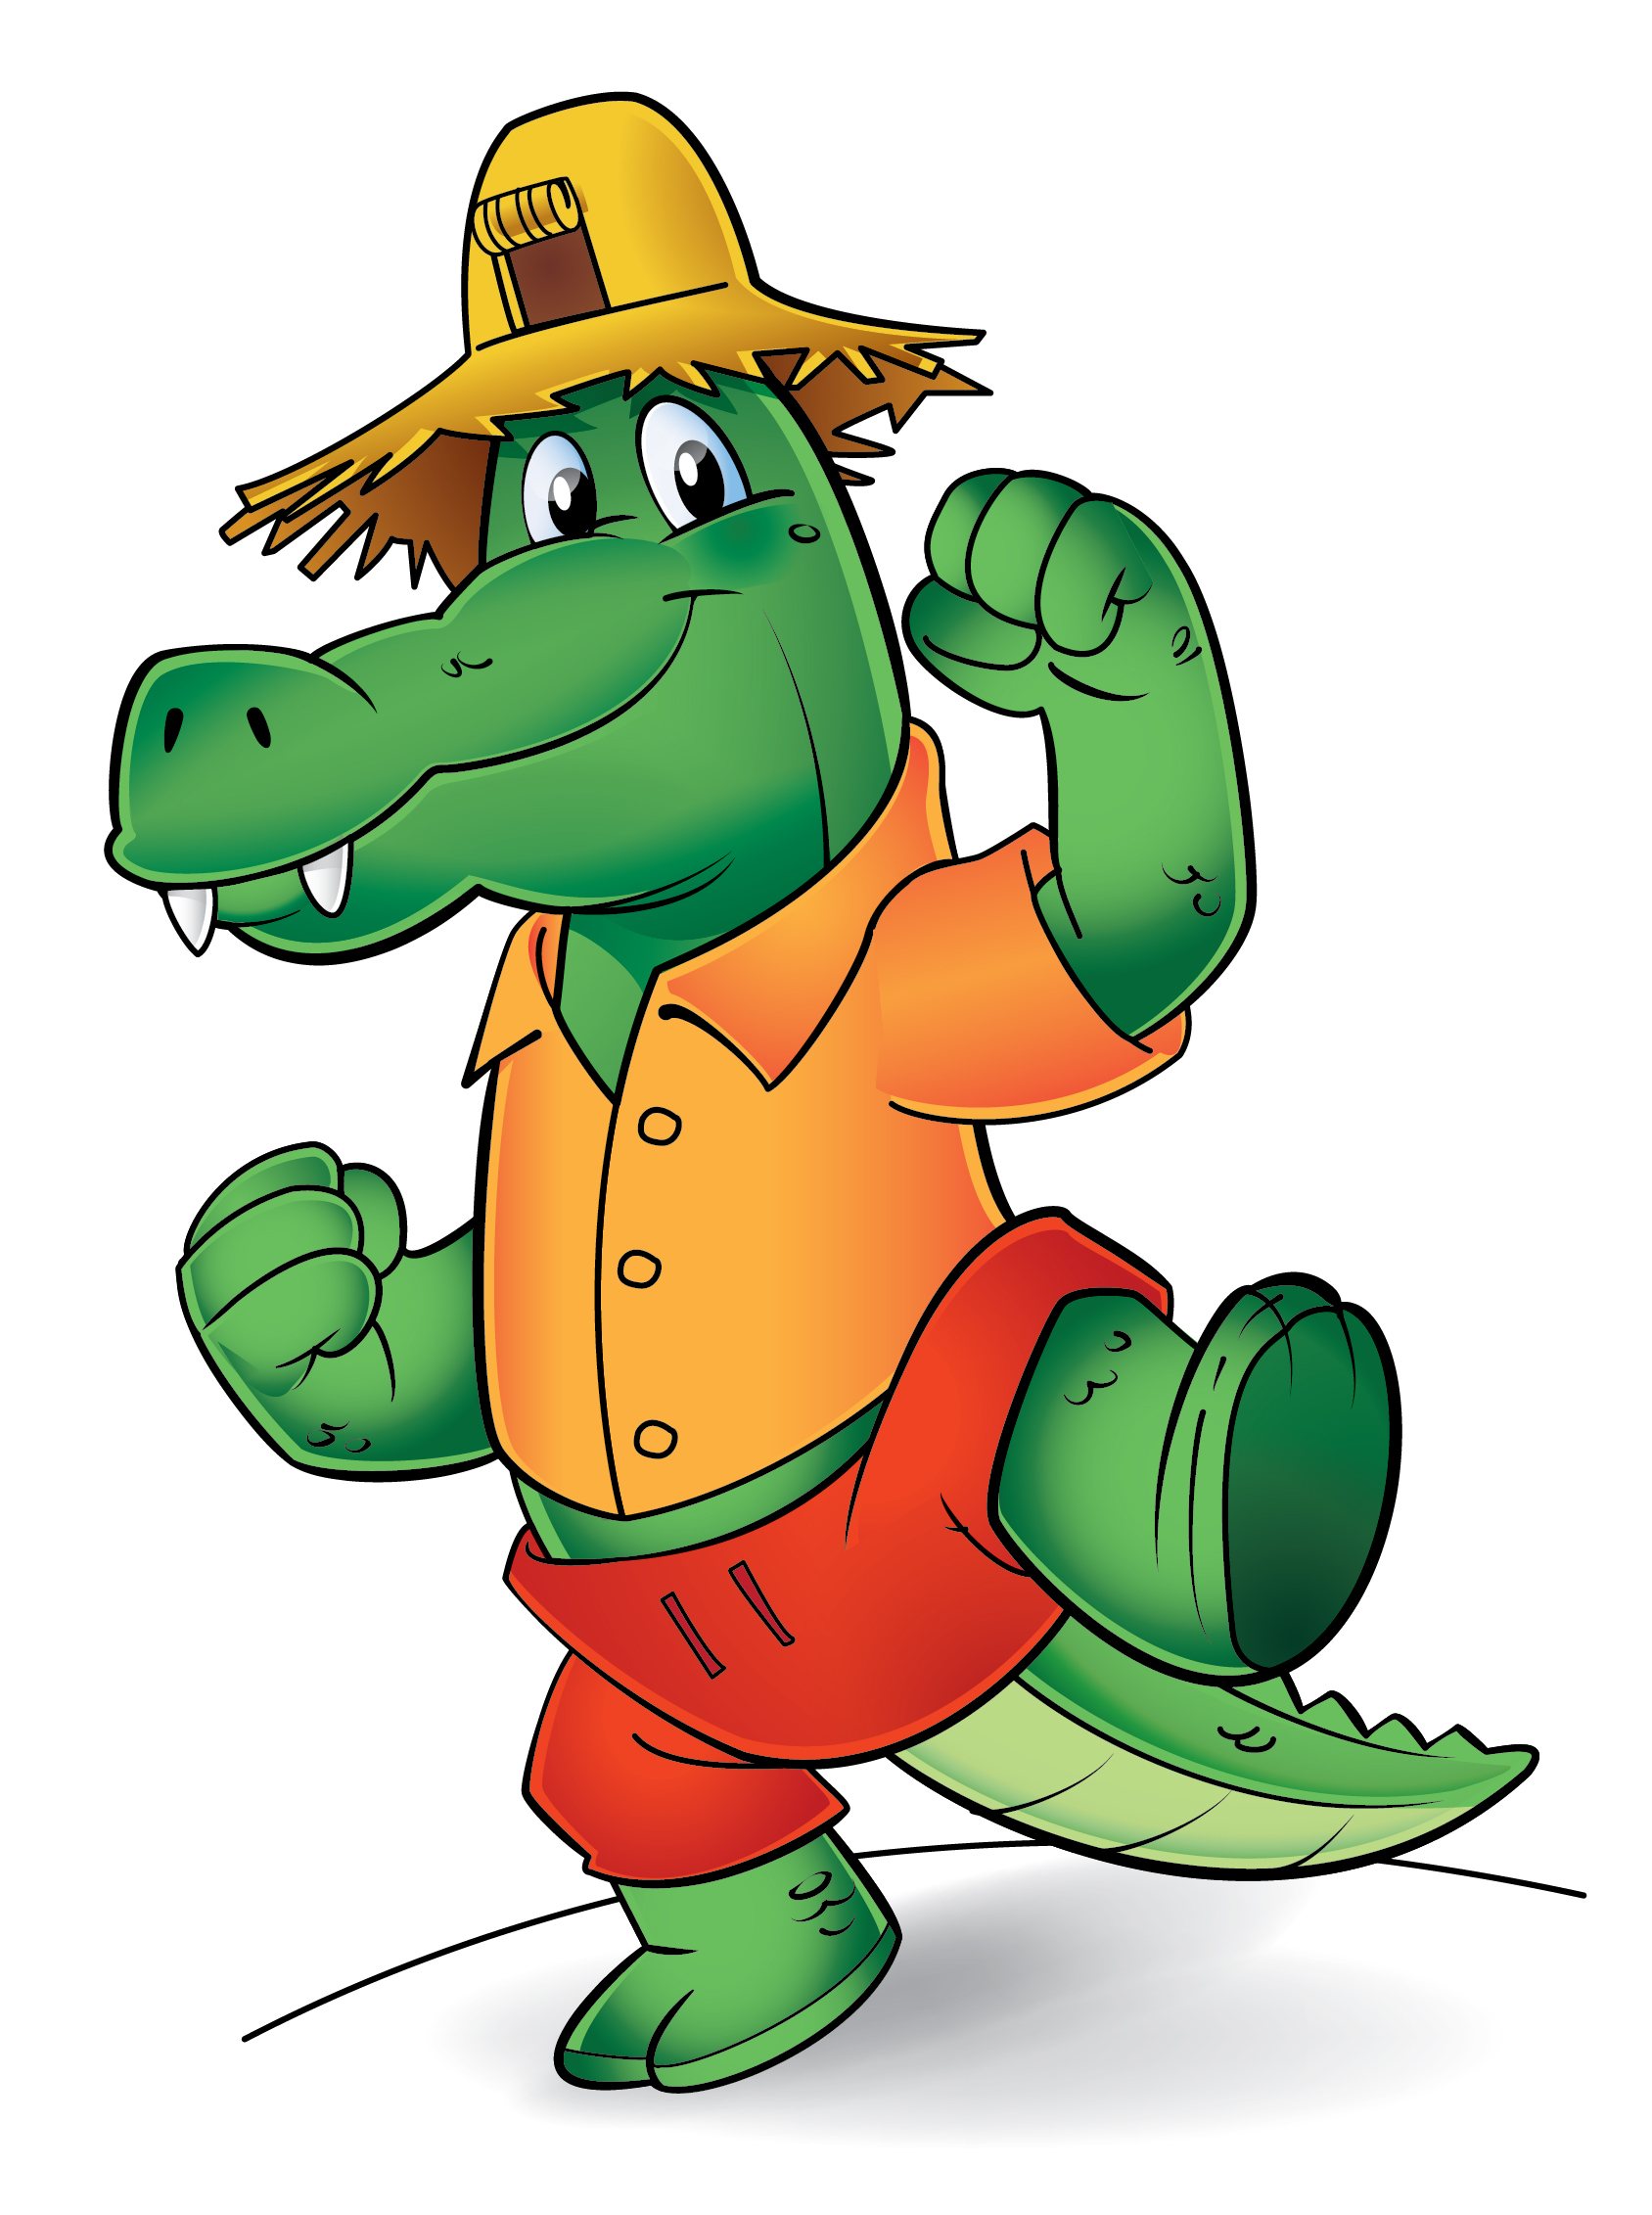 Dancing Crocodile Mascot